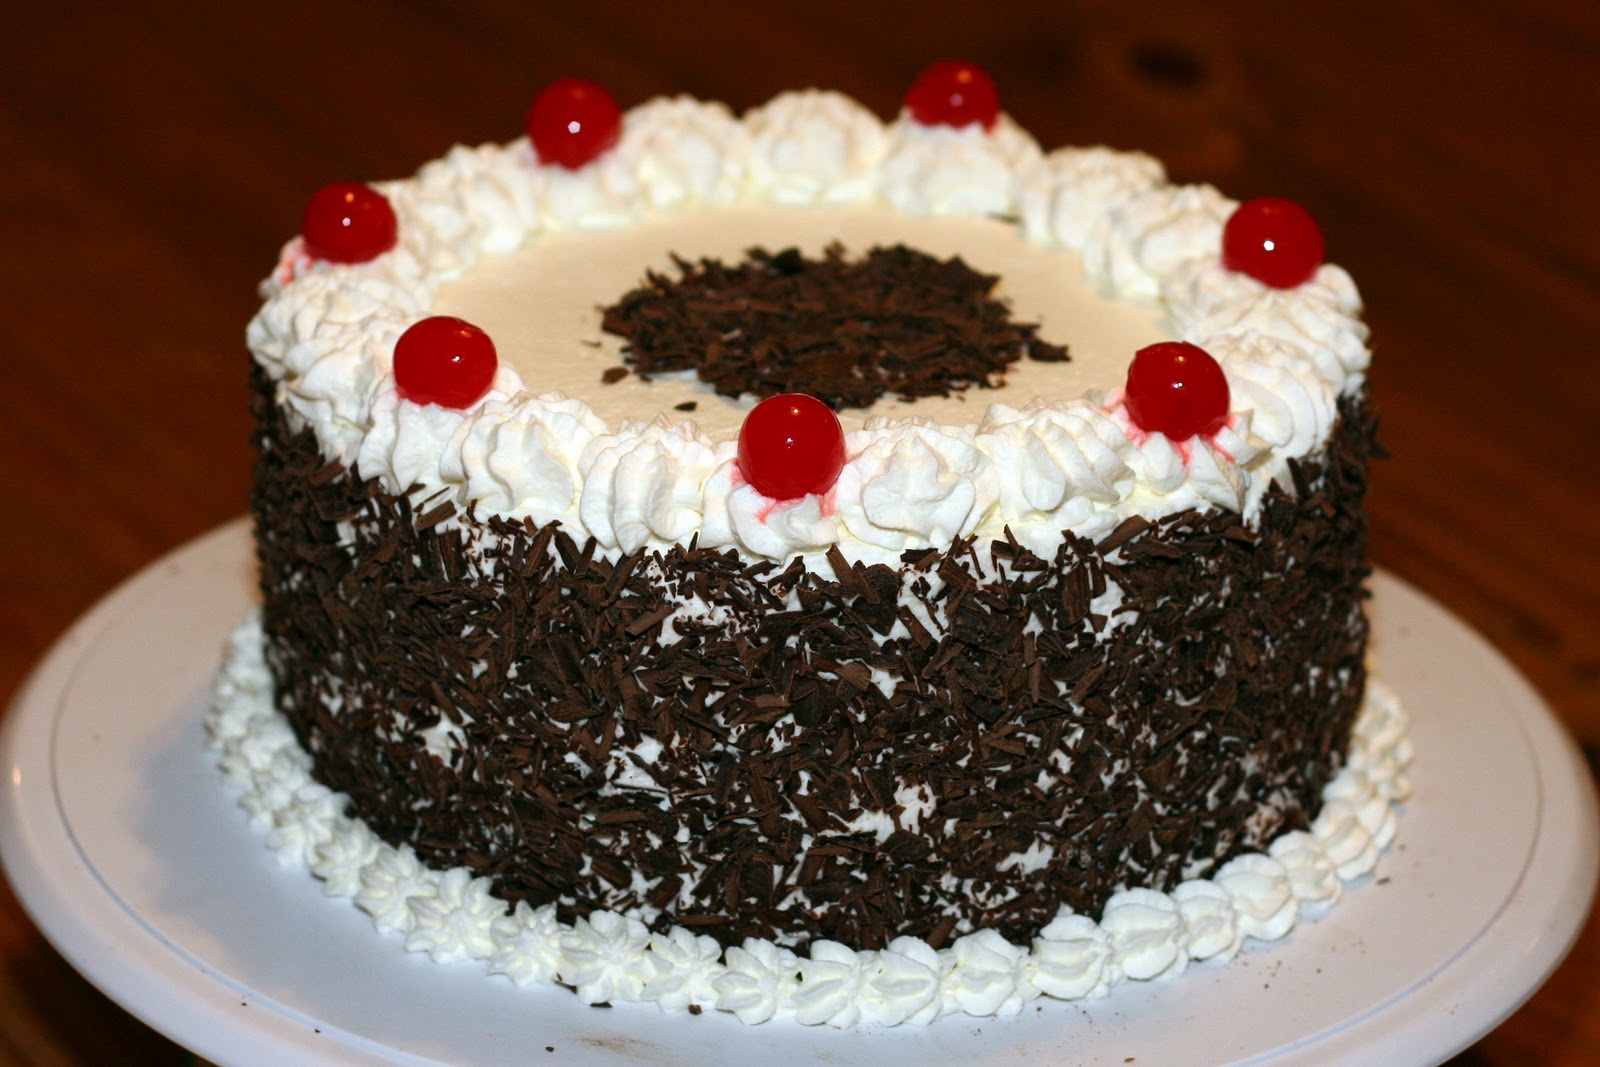 Images Of Birthday Cake Black Forest : Cake on Birthday: We Offer Black Forest Cakes at ...